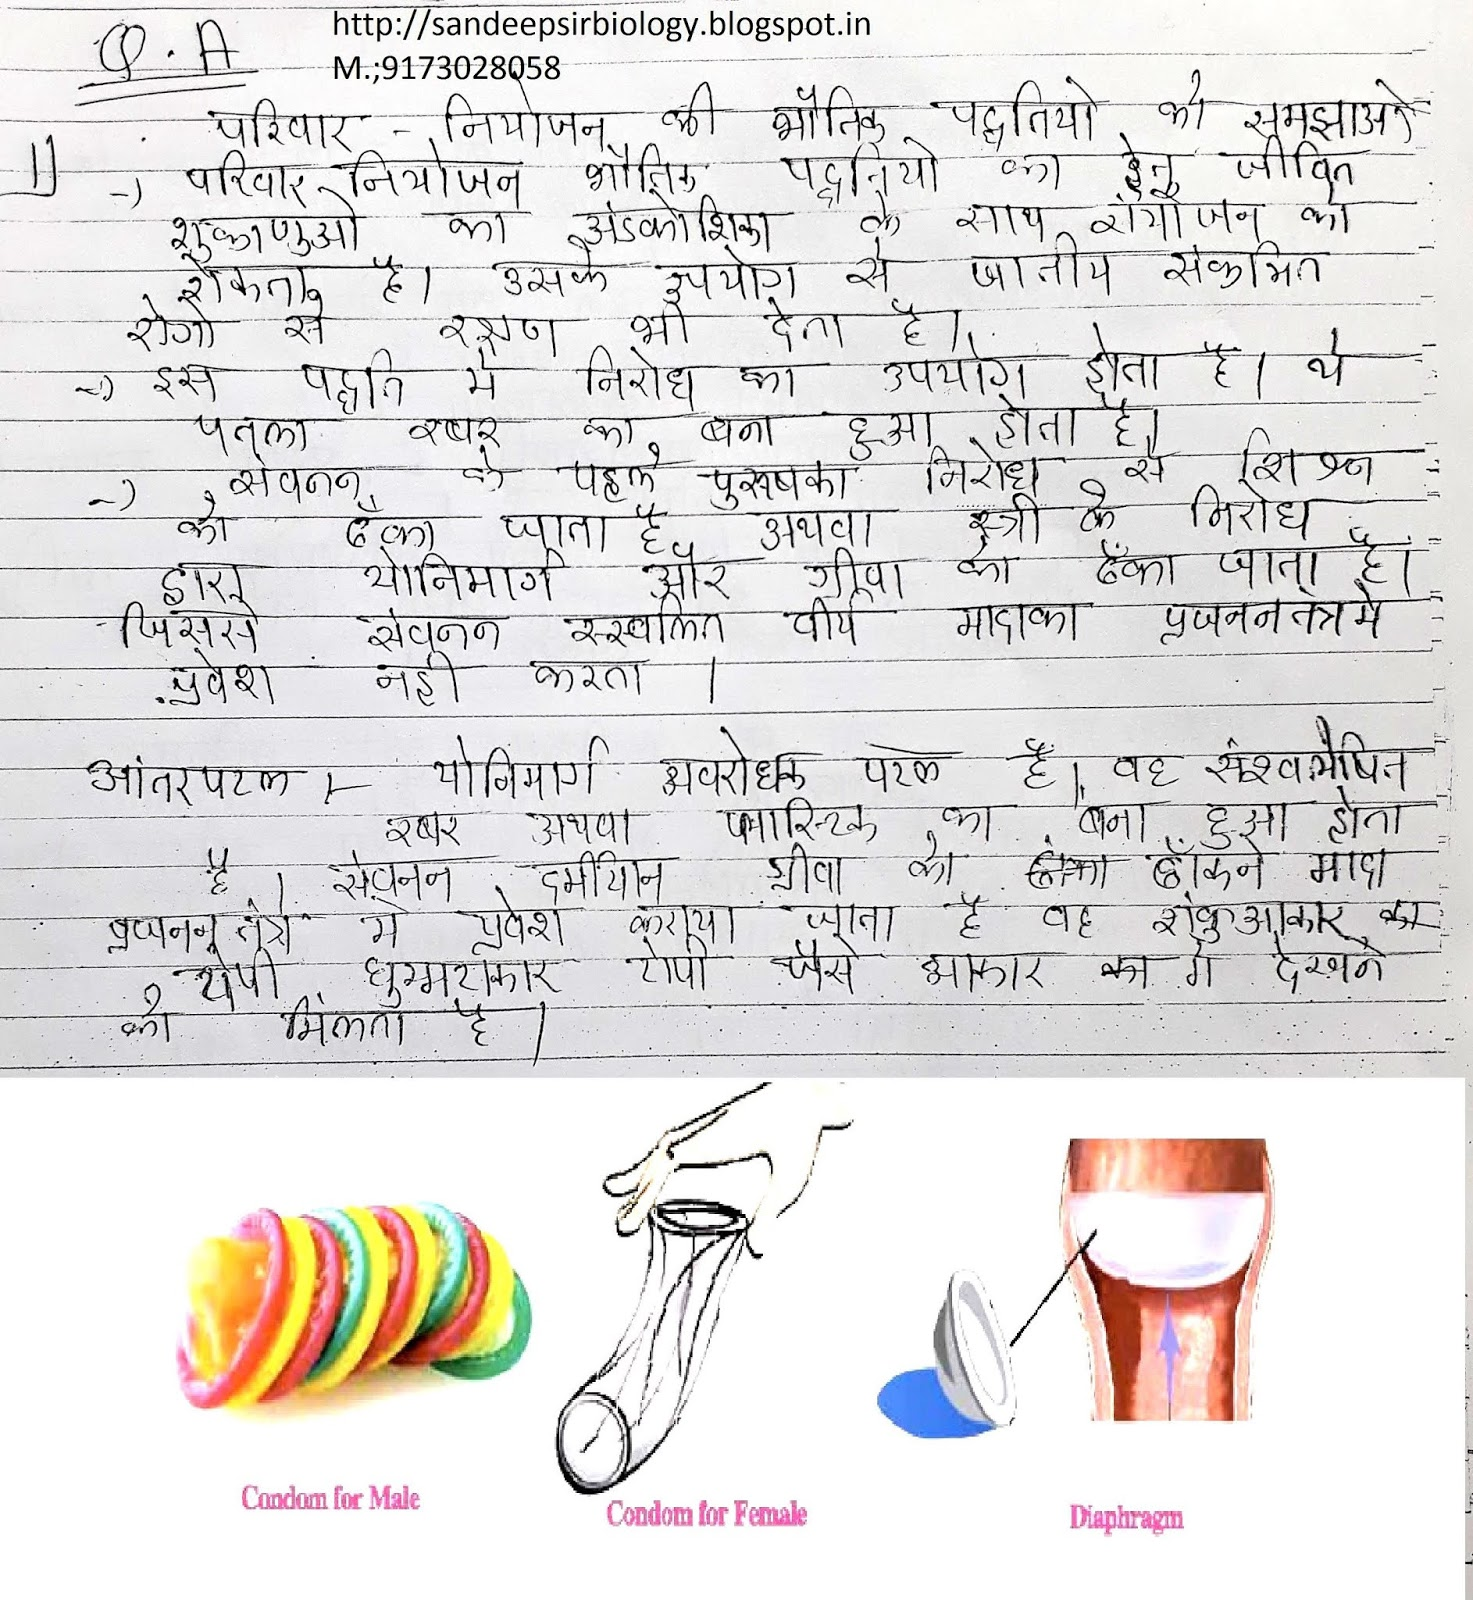 VASECTOMY TUBECTOMY REPRODUCTIVE HEALTH CLASS 12 HINDI NOTES